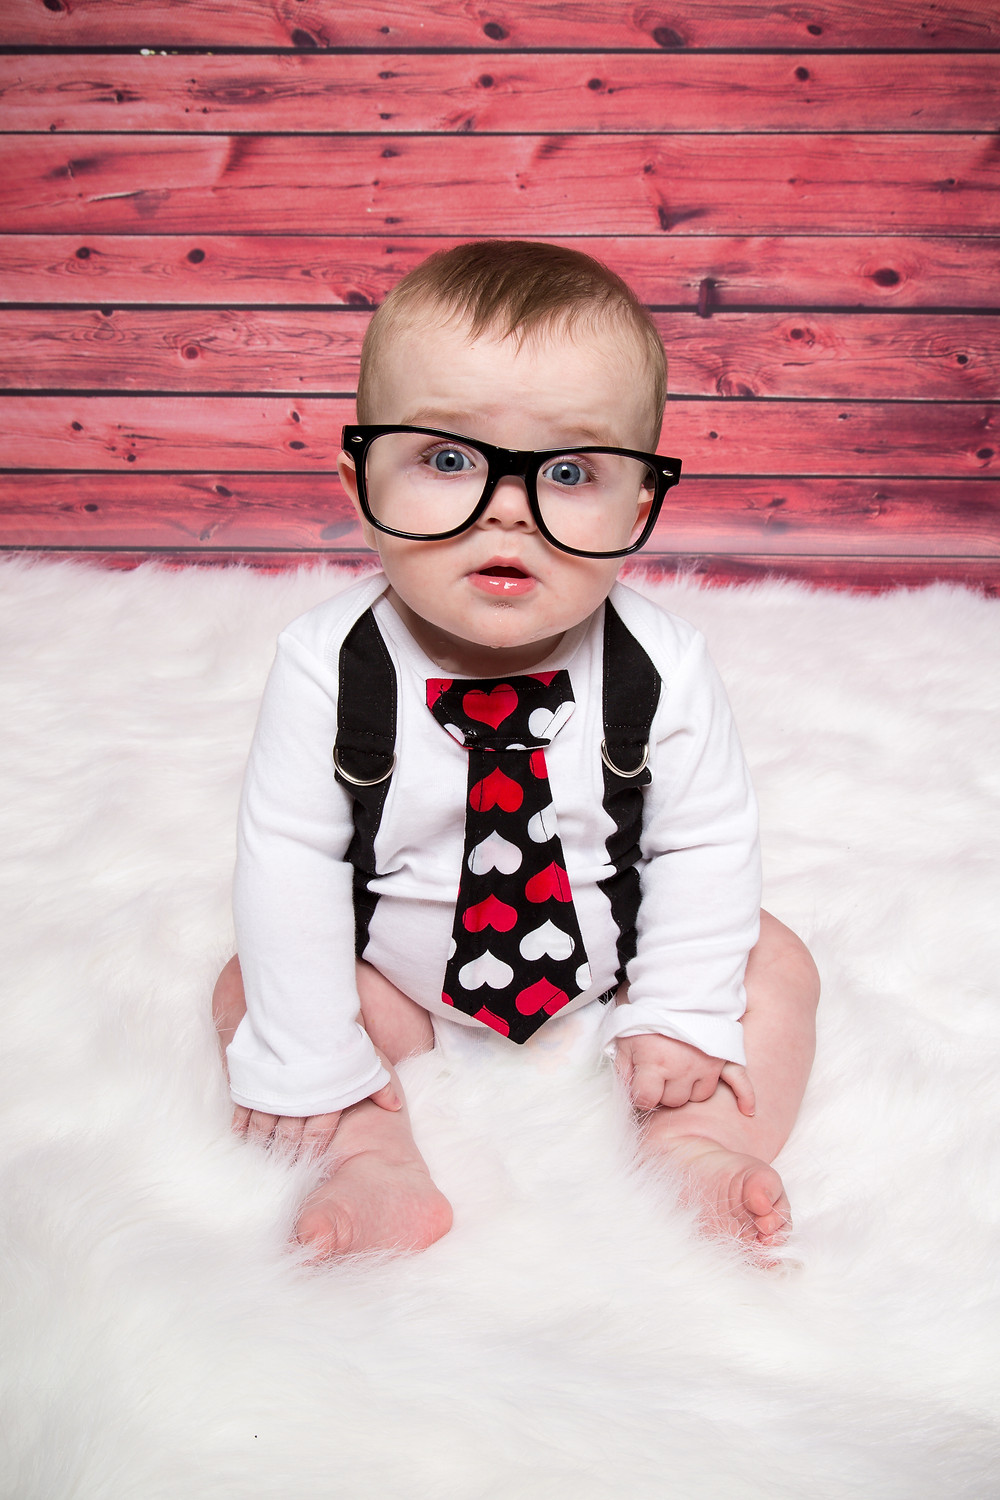 6 month baby boy suspenders and glasses